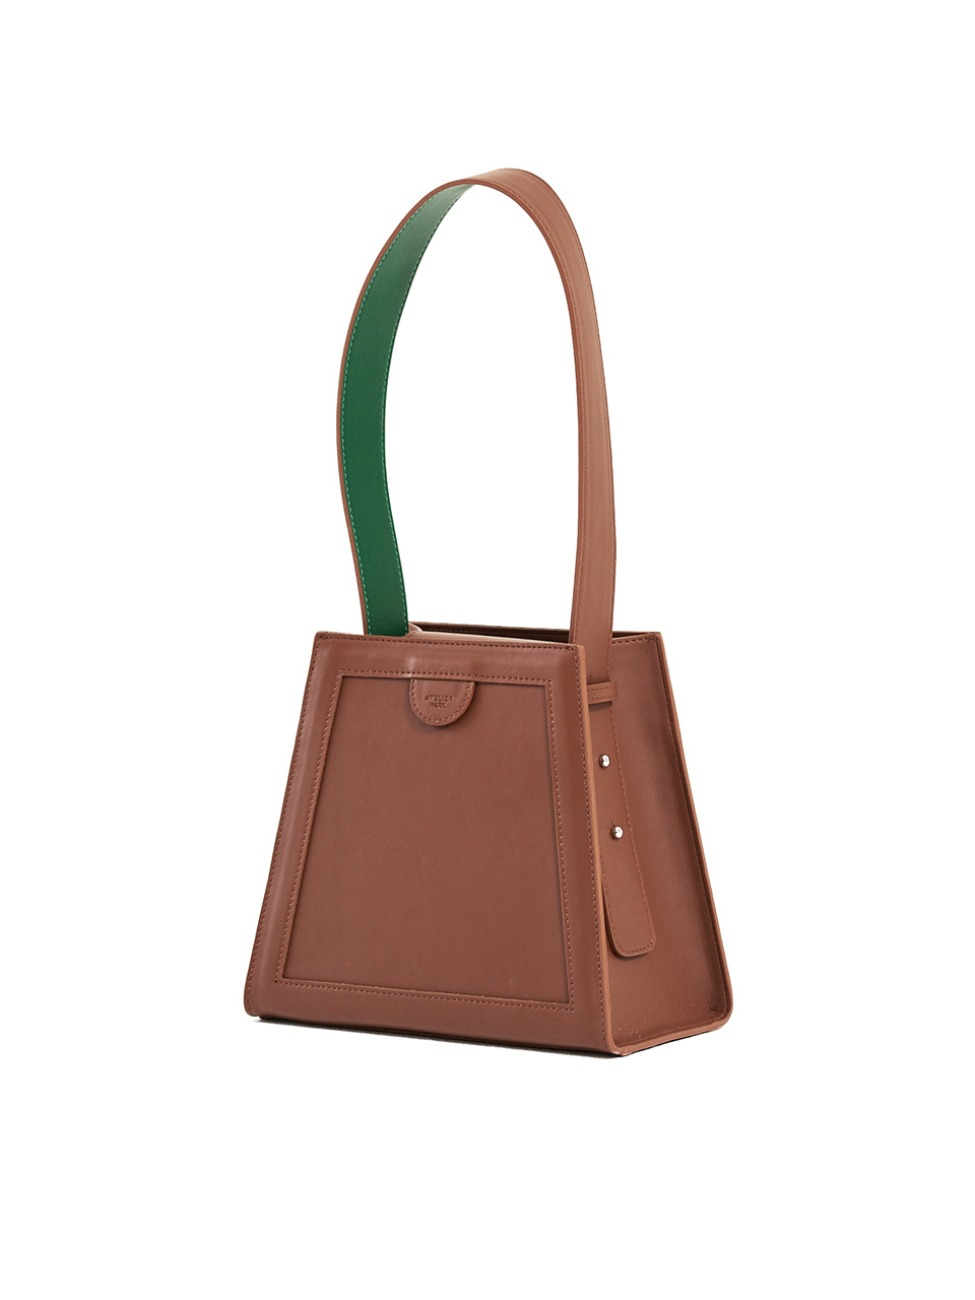 GEO BAG_BROWN/GREEN